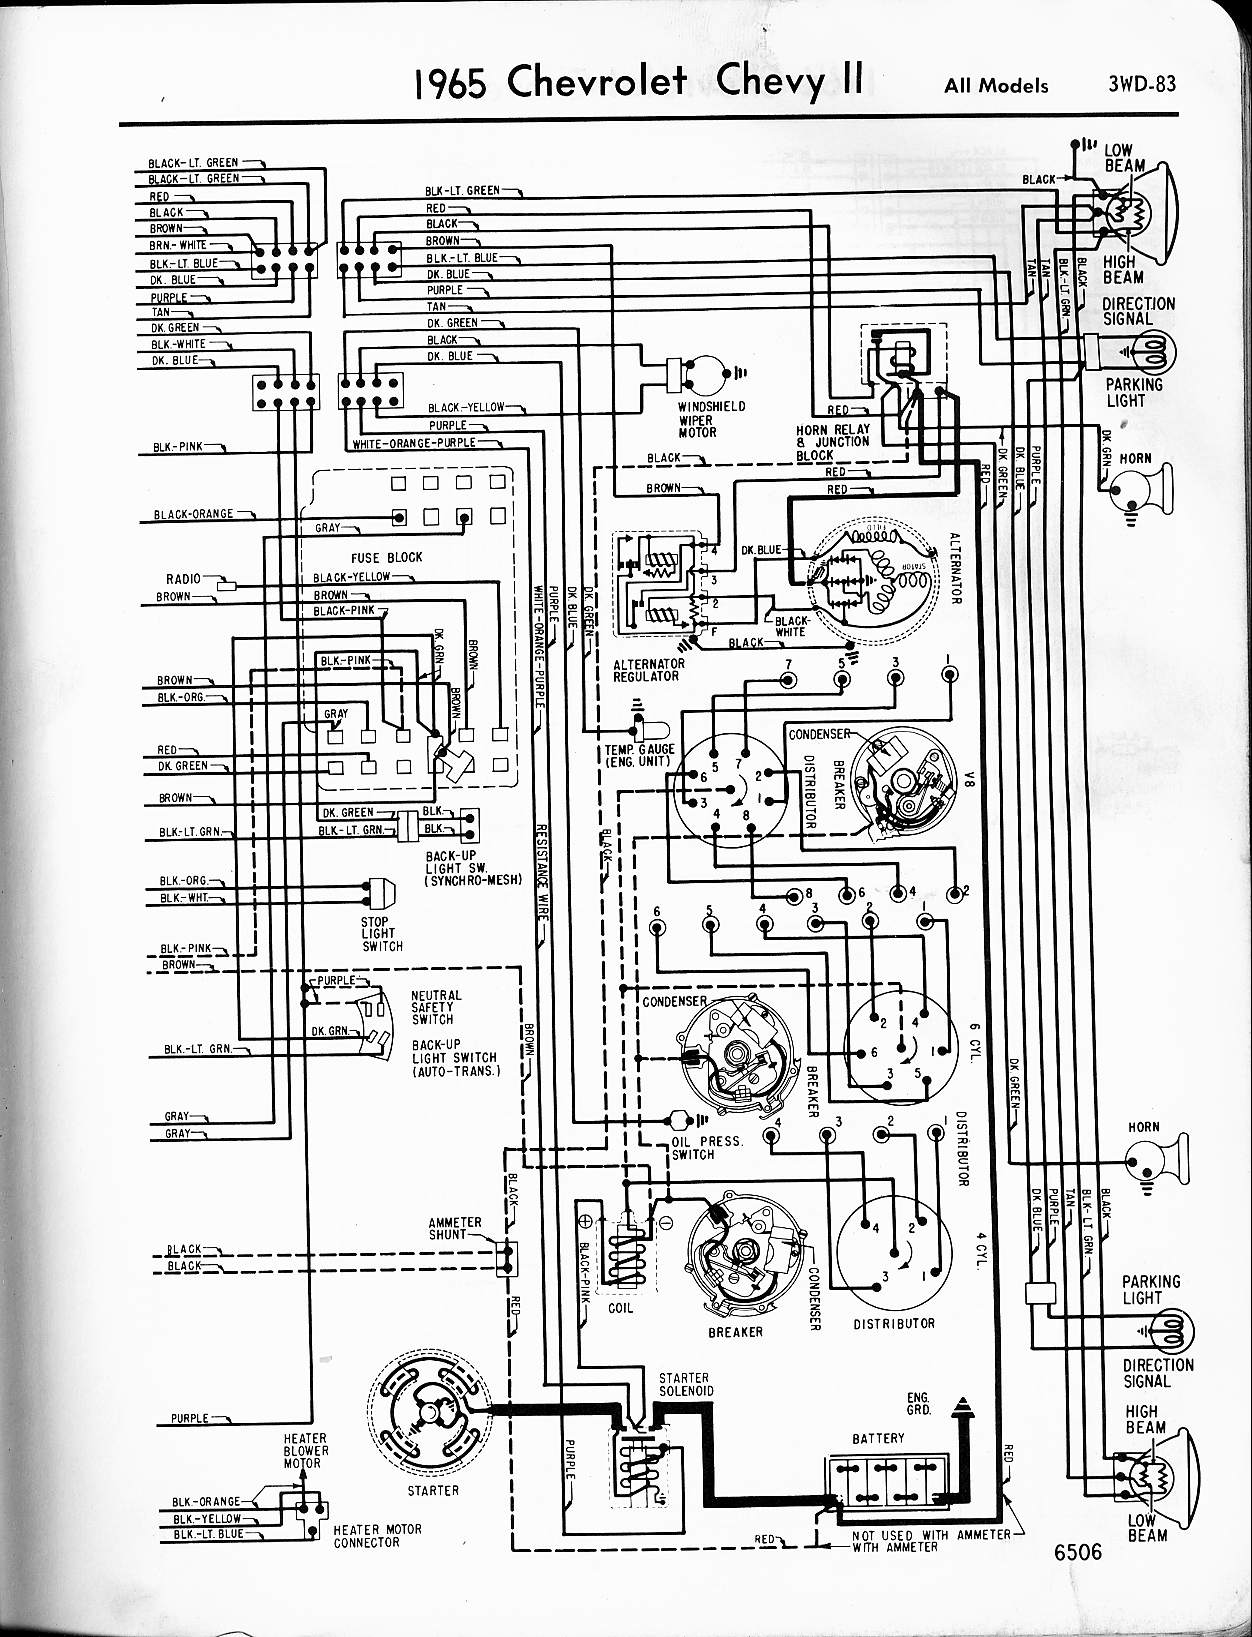 1966 chevy wiring schematic wiring schematics diagram rh mychampagnedaze  com 2000 Chevy Venture Transmission Diagram 1965 Chevy Impala Wiring Diagram